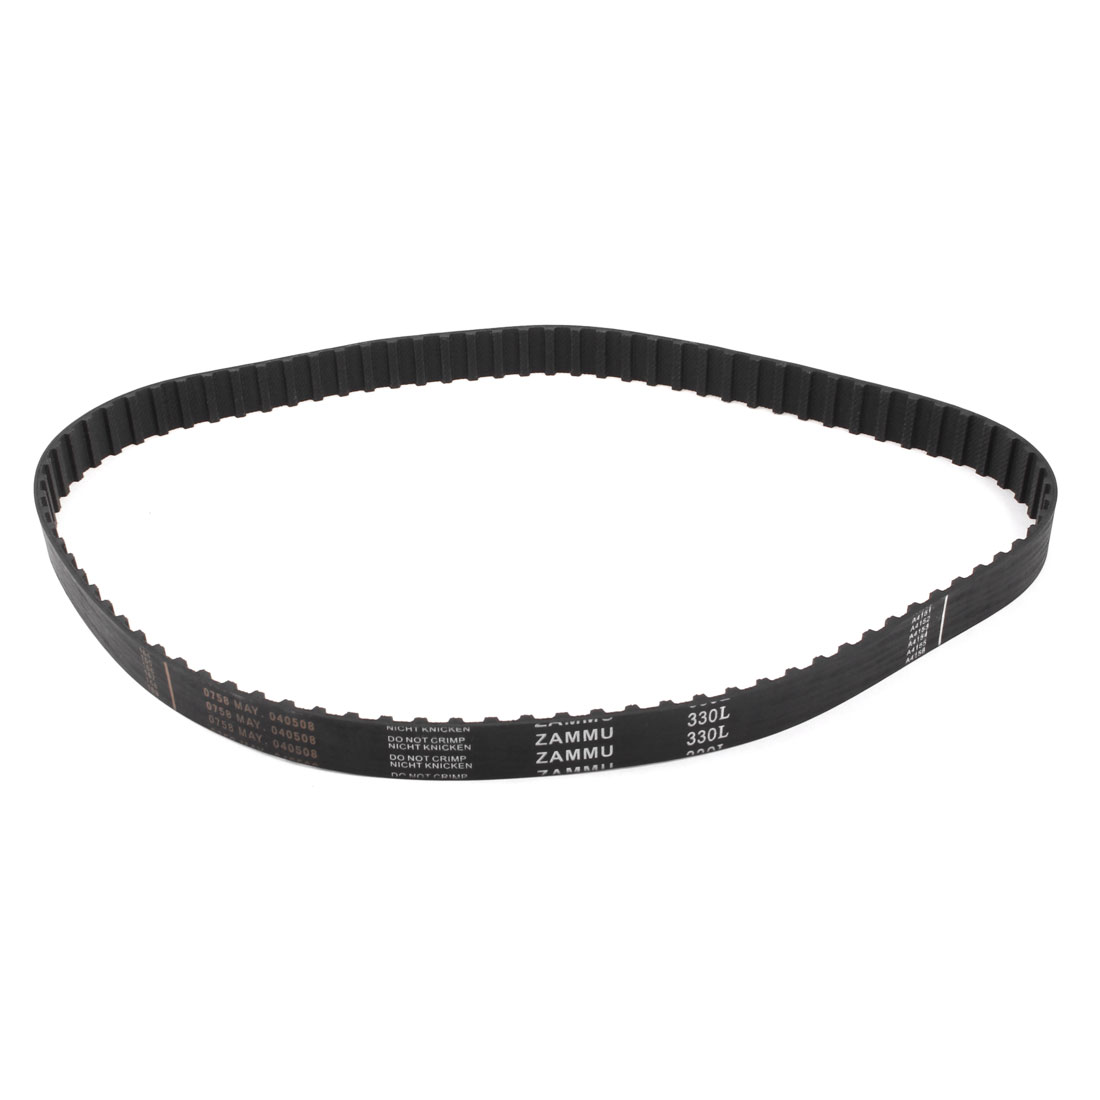 "9mm Pitch 31.5"" Inner Girth 20mm Width Synchro Timing Belt Black"